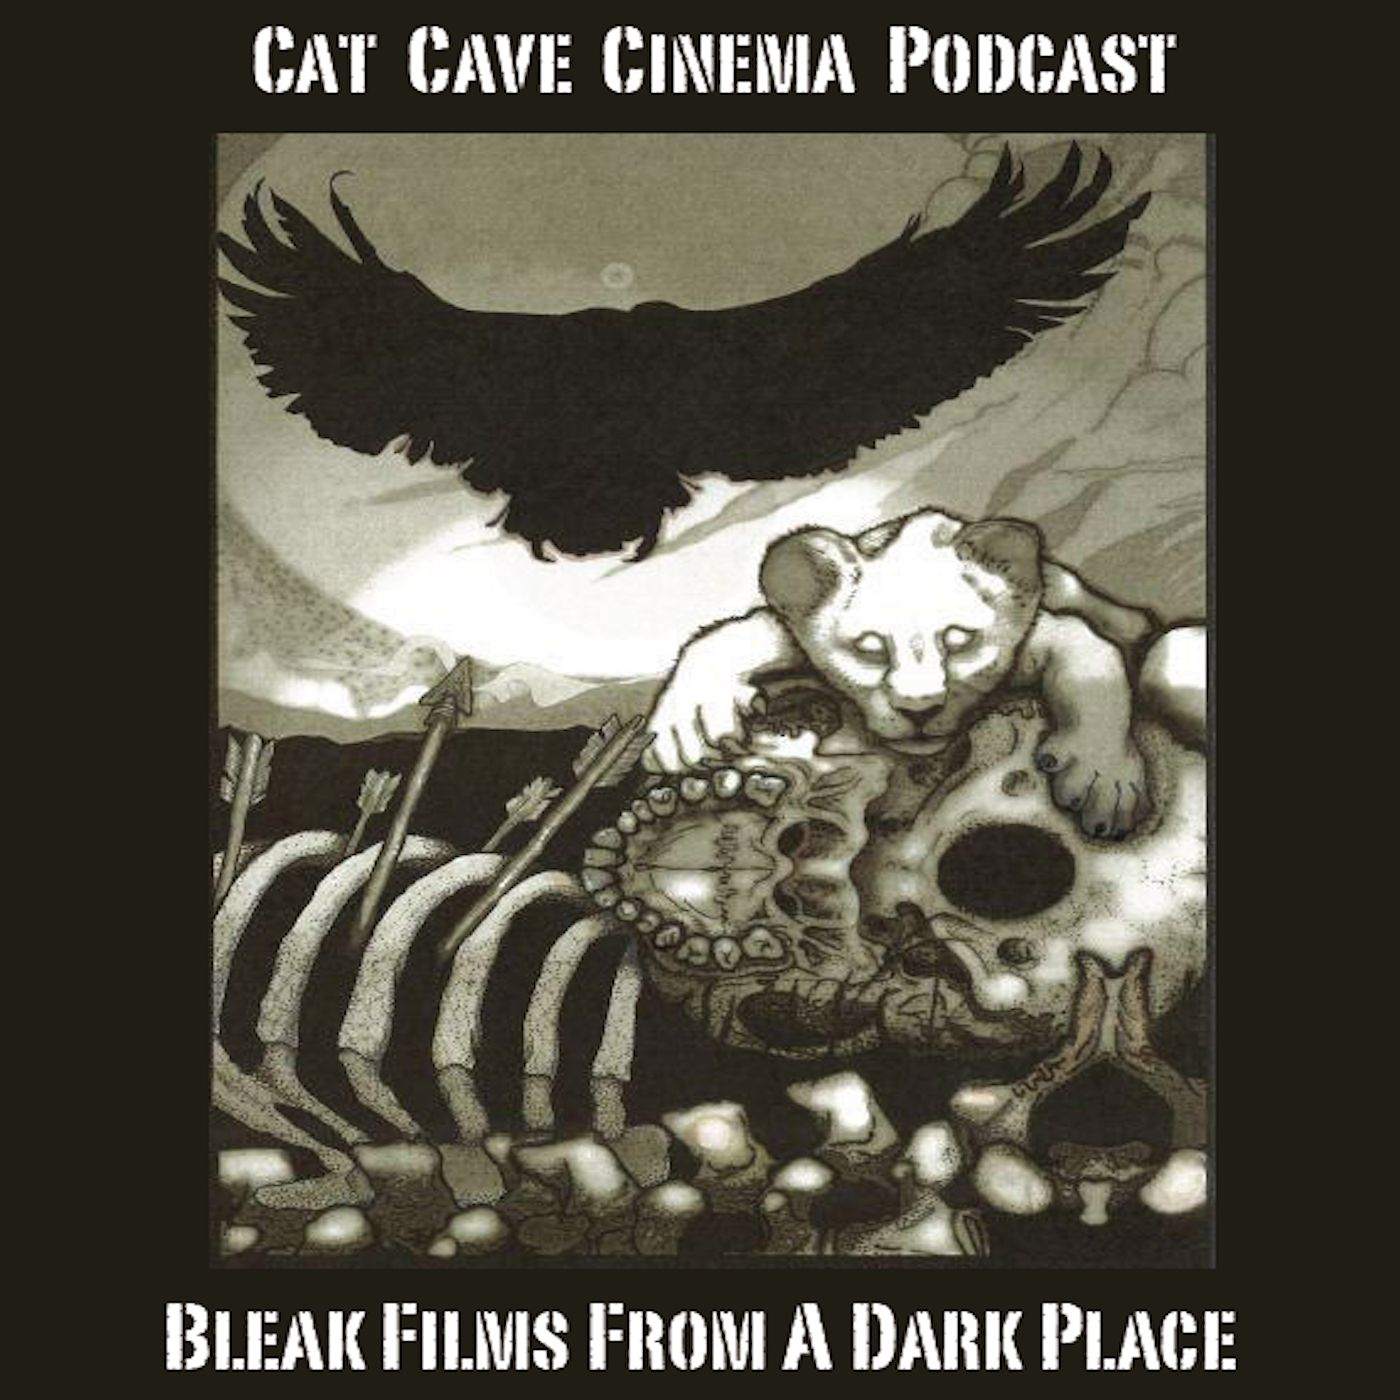 Cat Cave Cinema Podcast